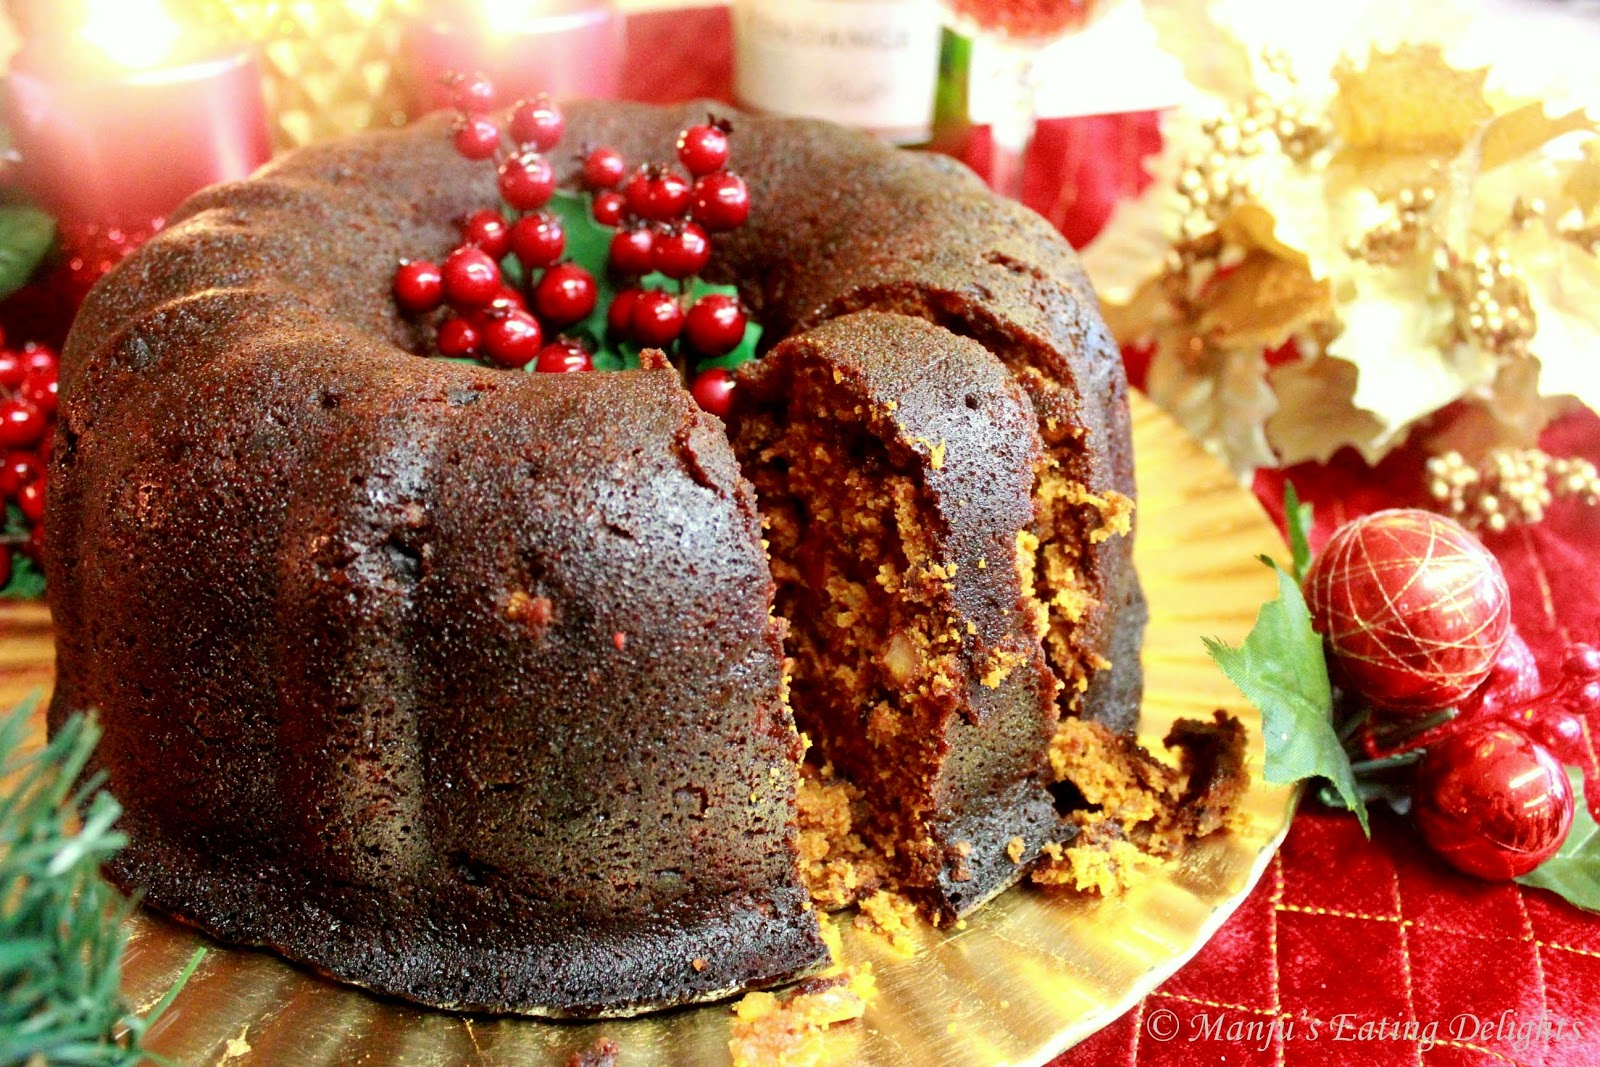 Cake Recipes With Liqueur: Manju's Eating Delights: Traditional Christmas Fruit Cake